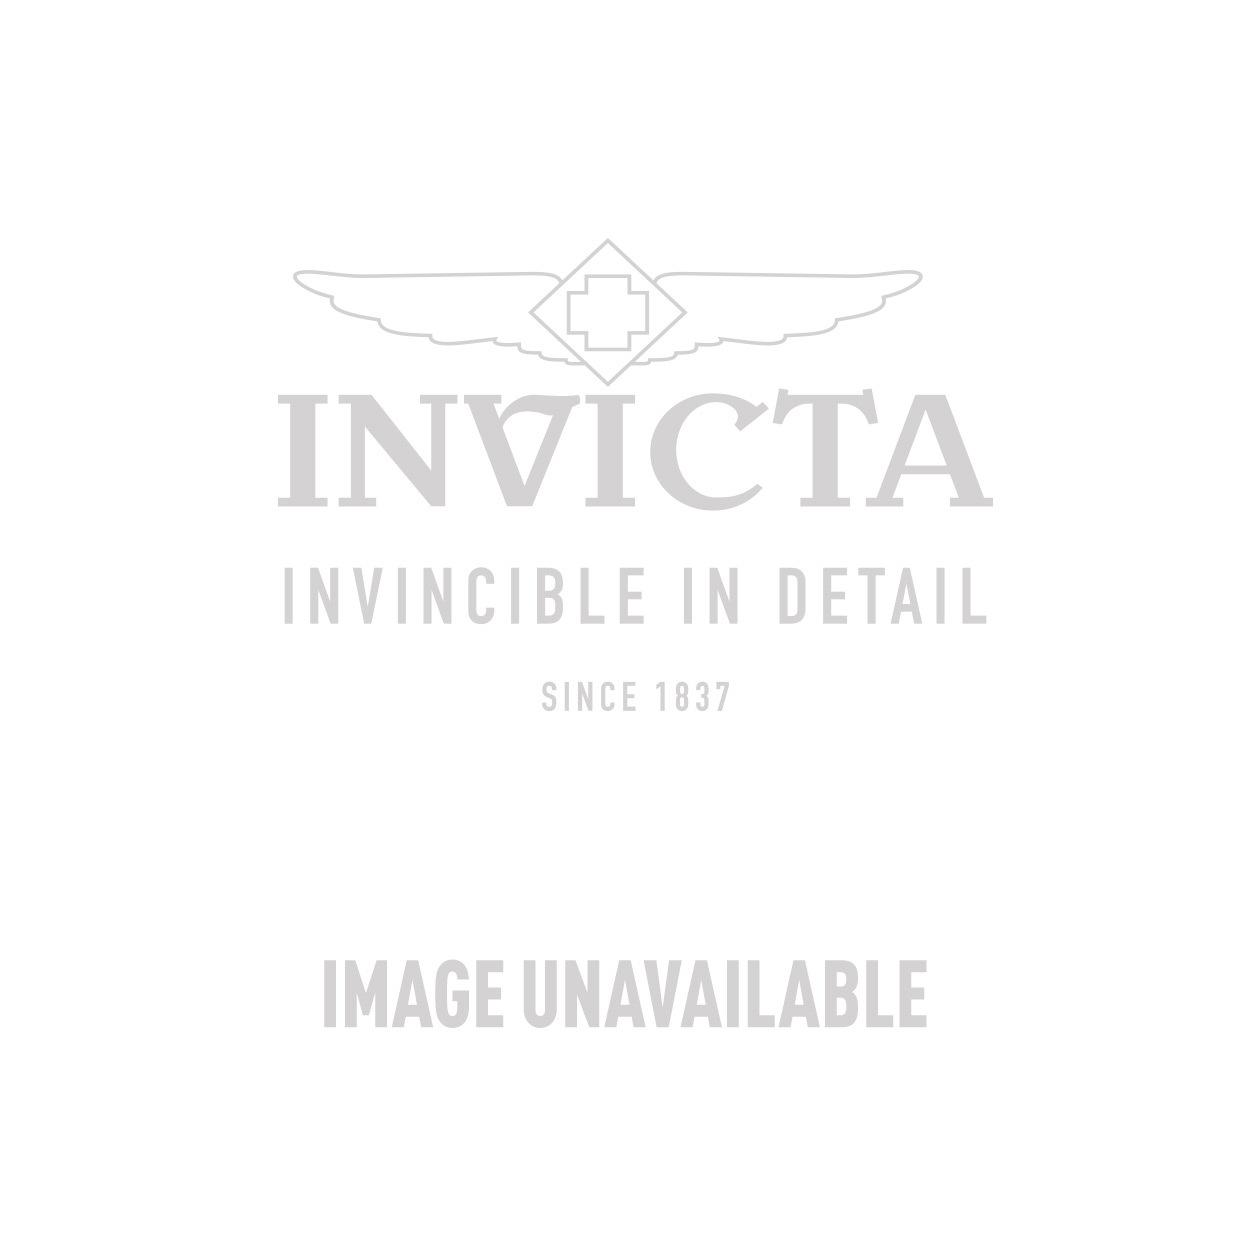 Invicta Pro Diver Quartz Watch - Gold, Stainless Steel case Stainless Steel band - Model 12308